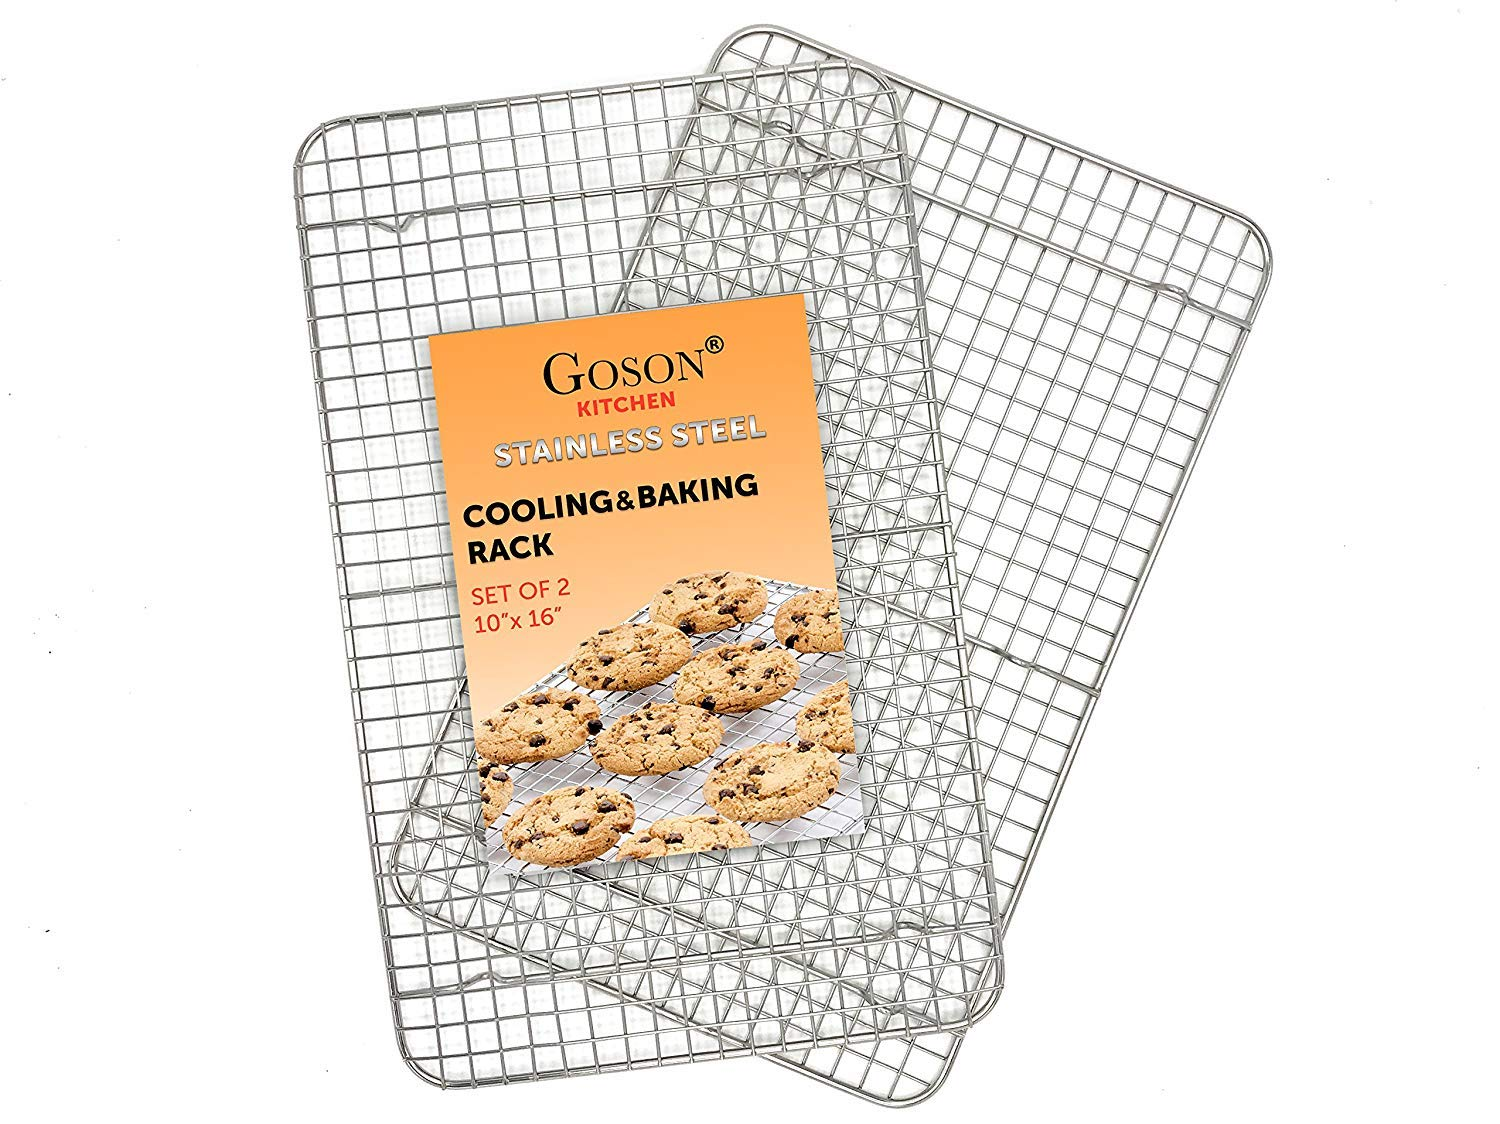 Goson Kitchen Stainless Steel Heavy Duty Metal Wire Cooling, Cooking, Baking Rack For Baking Sheet, Oven Safe up to 575F, Dishwasher Safe Rust Free | 10''x16''; SET OF 2